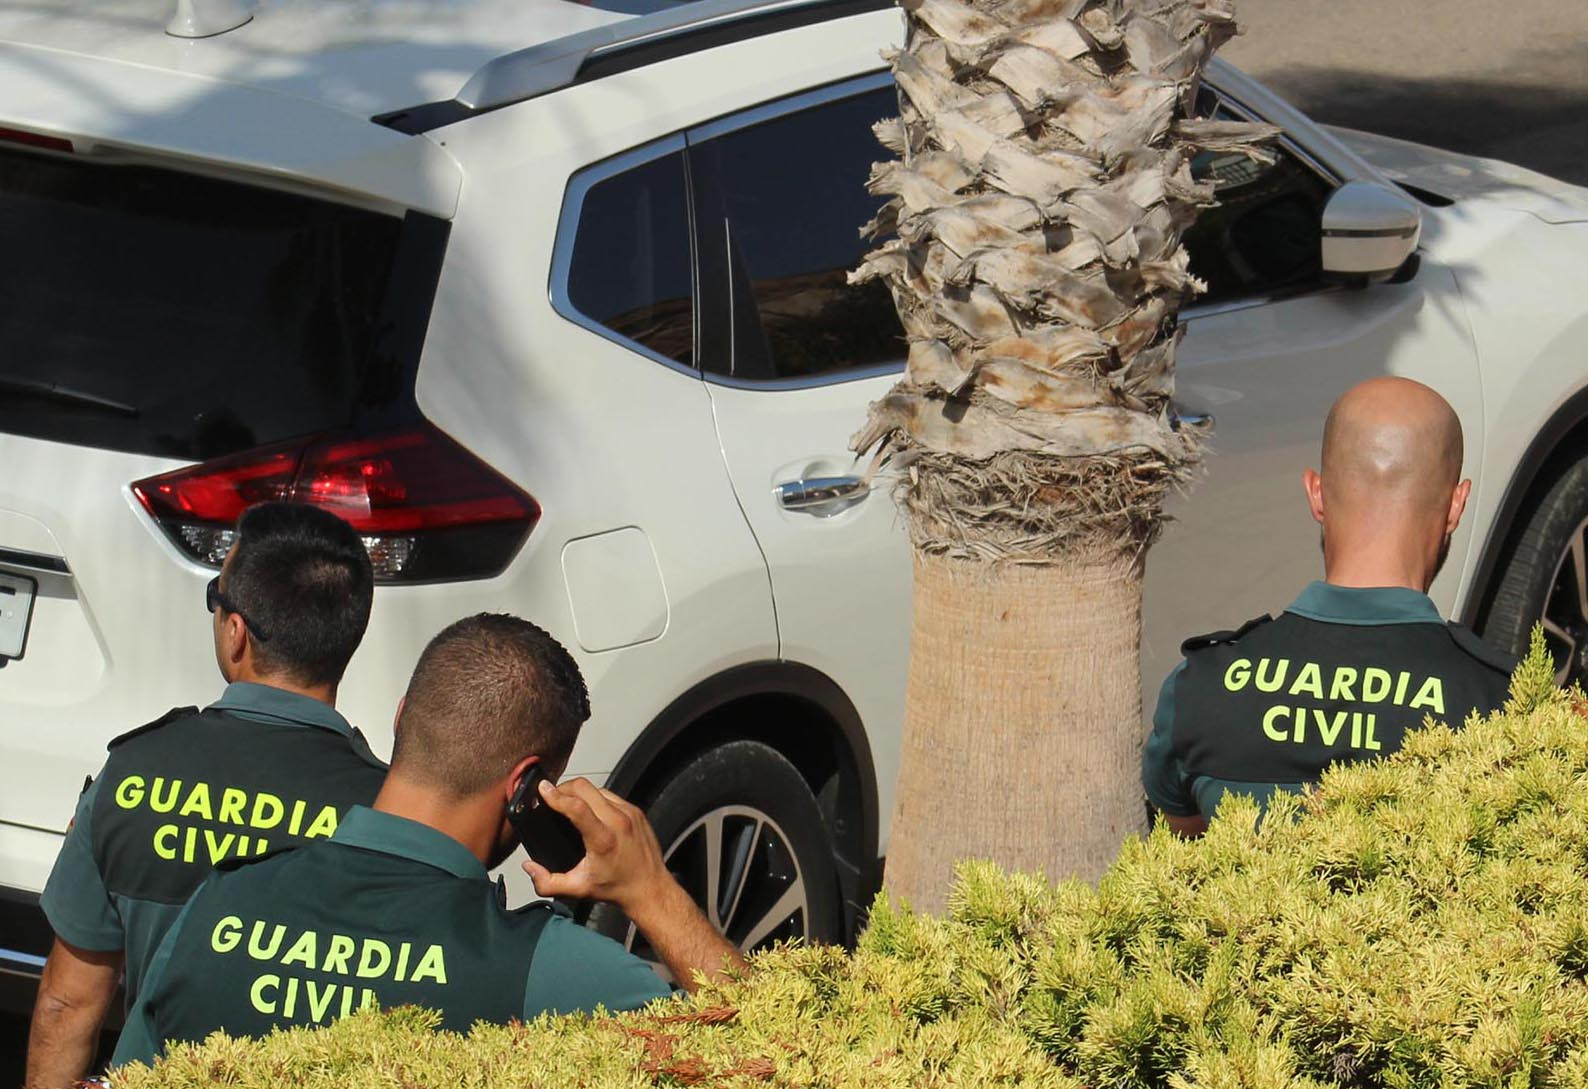 Guardia officers arrive at the urbanisation to begin their investigation